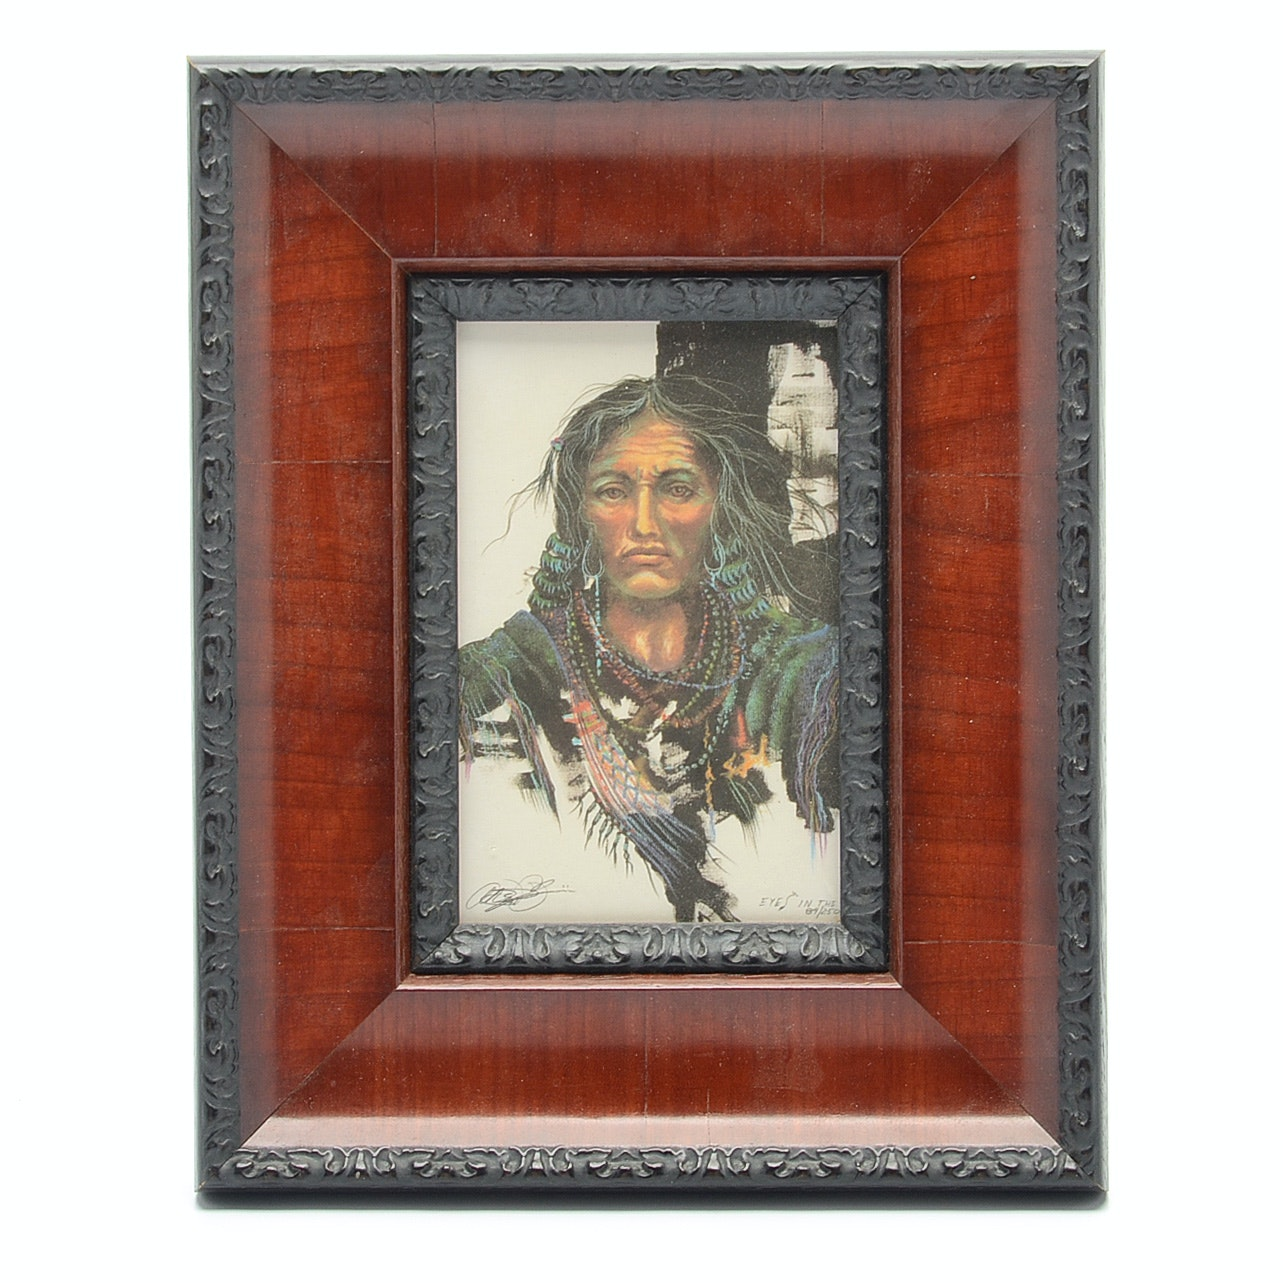 """1992 Albert T. Purvis """"Eyes In The Dark"""" Limited Edition Framed Lithograph"""